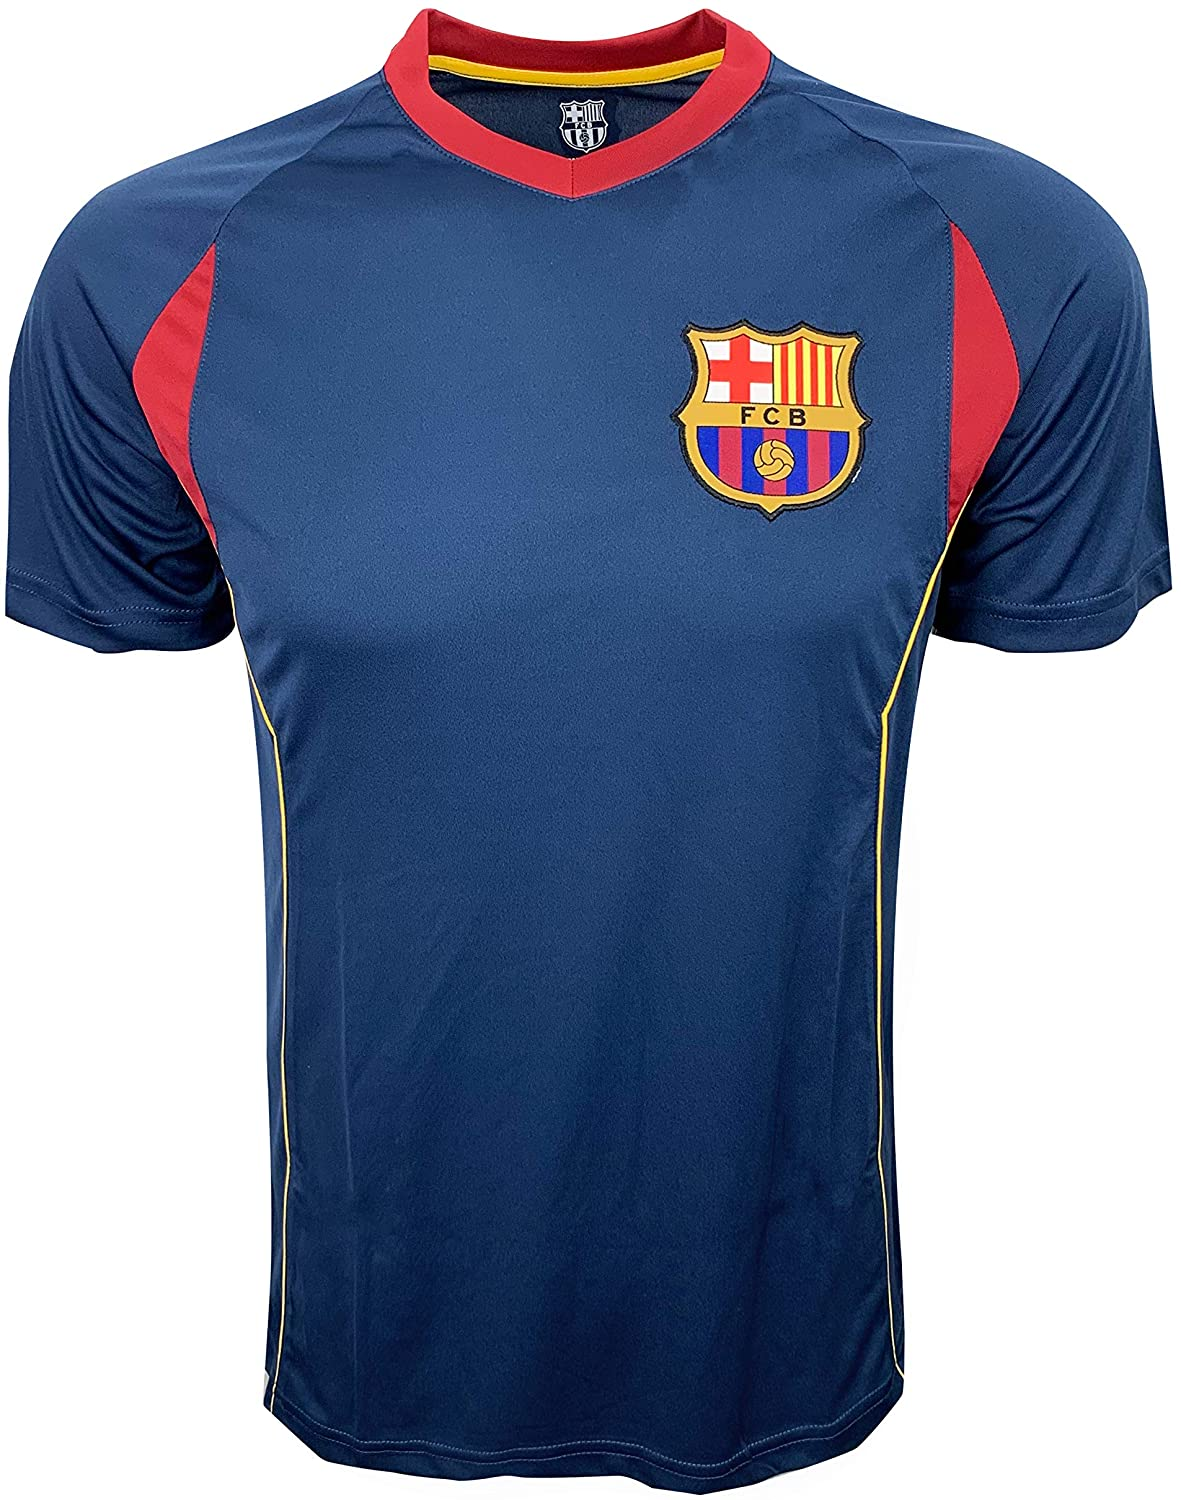 Barcelona Training Jersey, for Kids and Adults, Performance Polyester -Shirts (Youth Medium 7-9 Years)